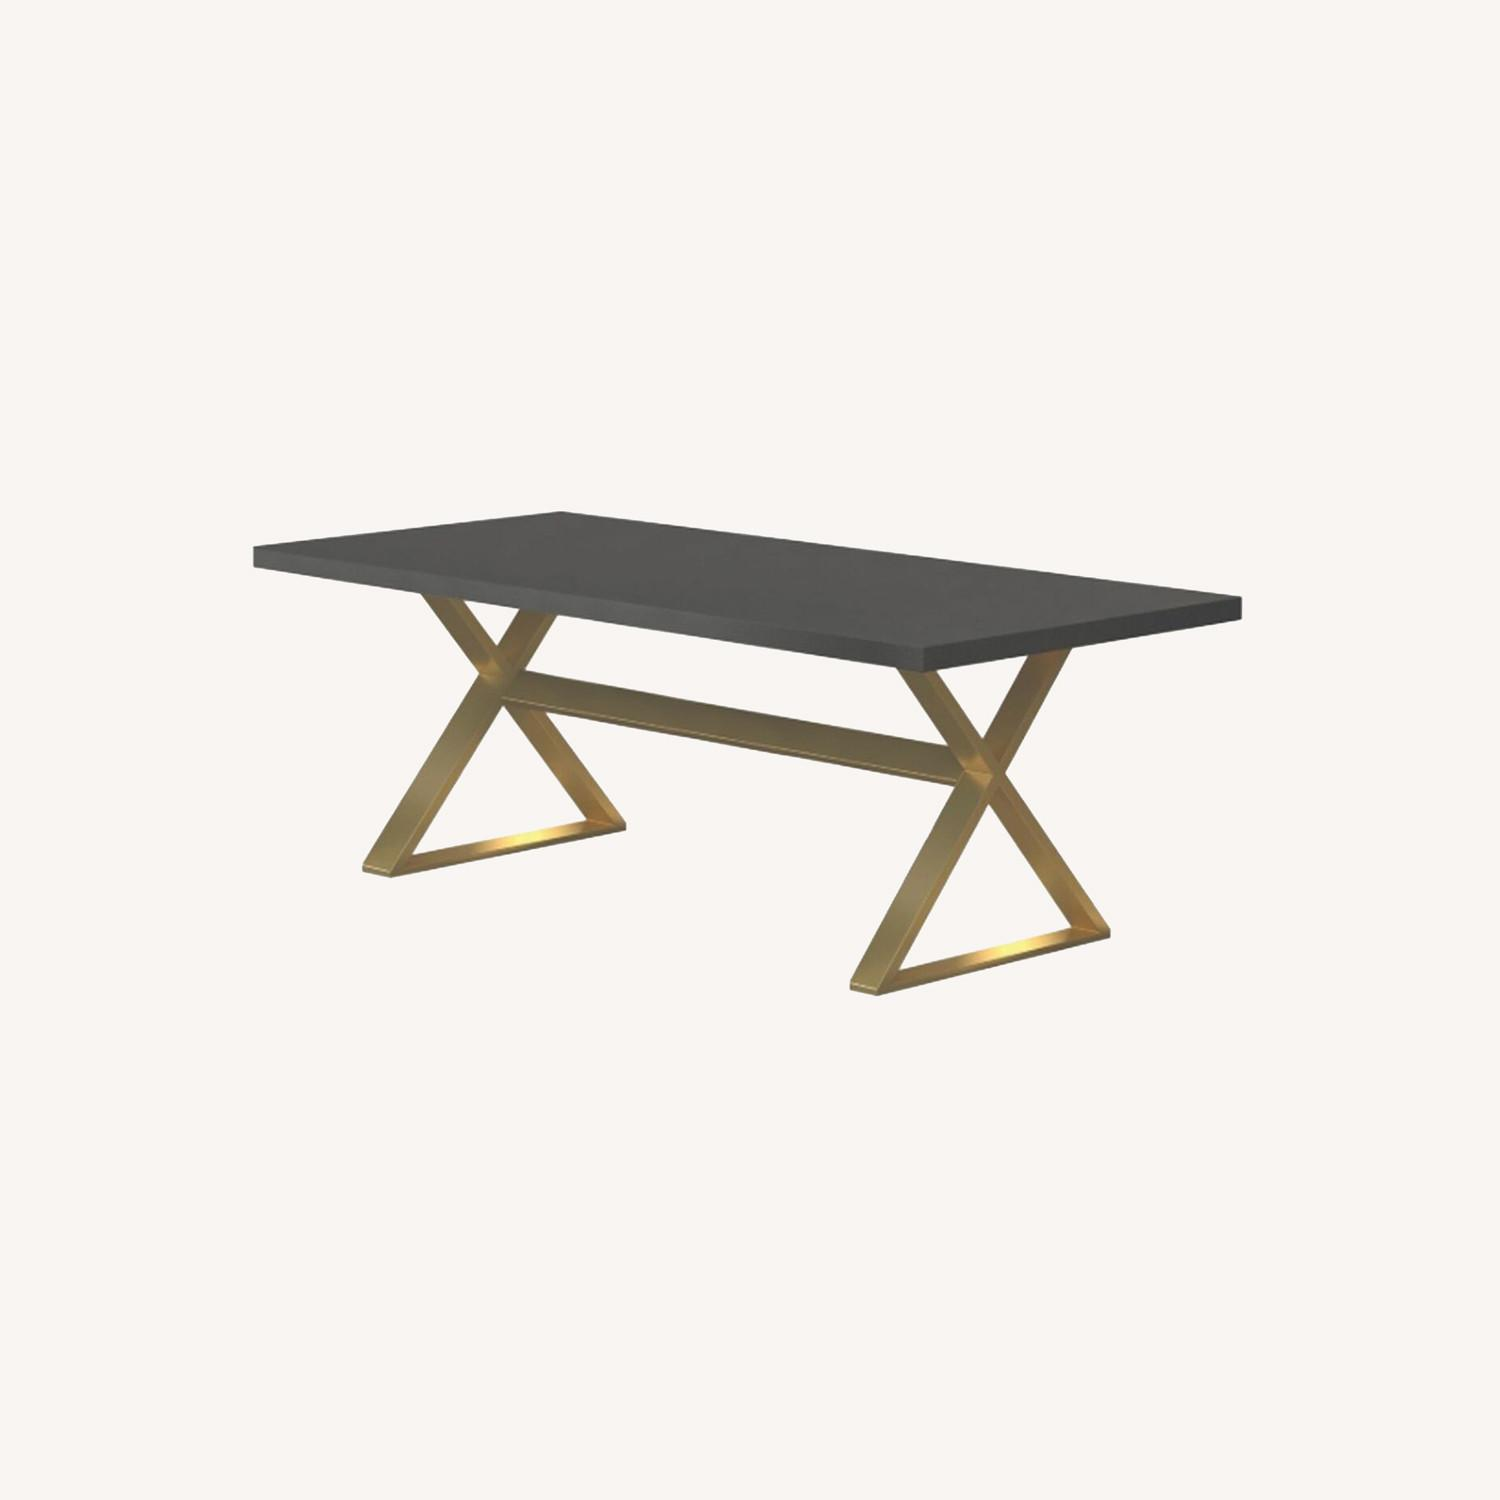 Dining Table In Dark Walnut W/ Aged Gold Base - image-4